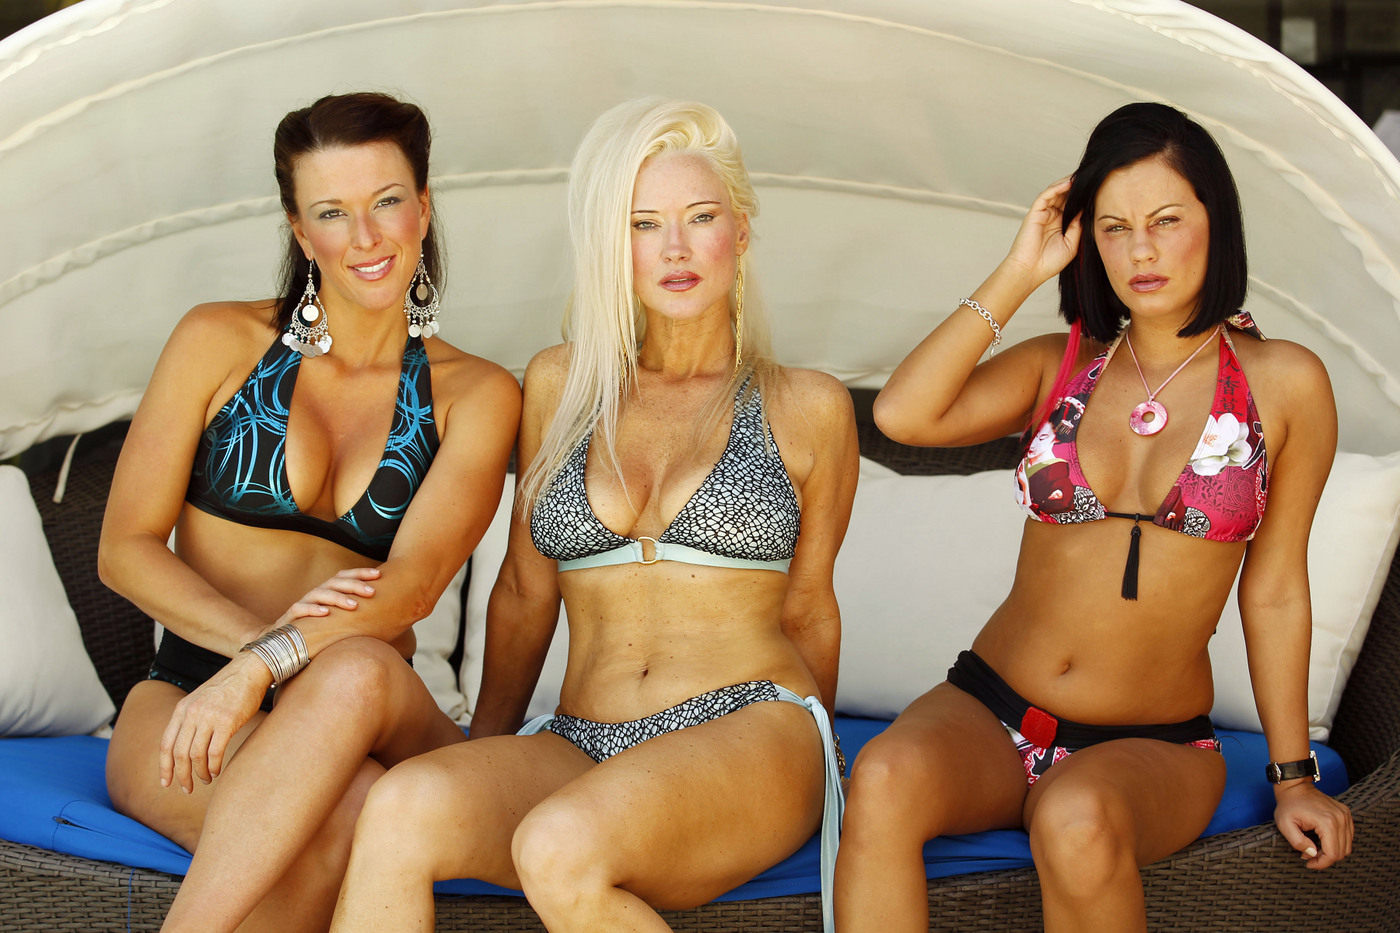 charlies angels essay Once upon a time there were three beautiful girls who went to the police academy and came back superstars here's how the cast of charlie's angels have changed over the years first coming to tv screens in 1976, charlie's angels has undoubtedly stood the test of time indeed, this genre-defining show about three feisty female.